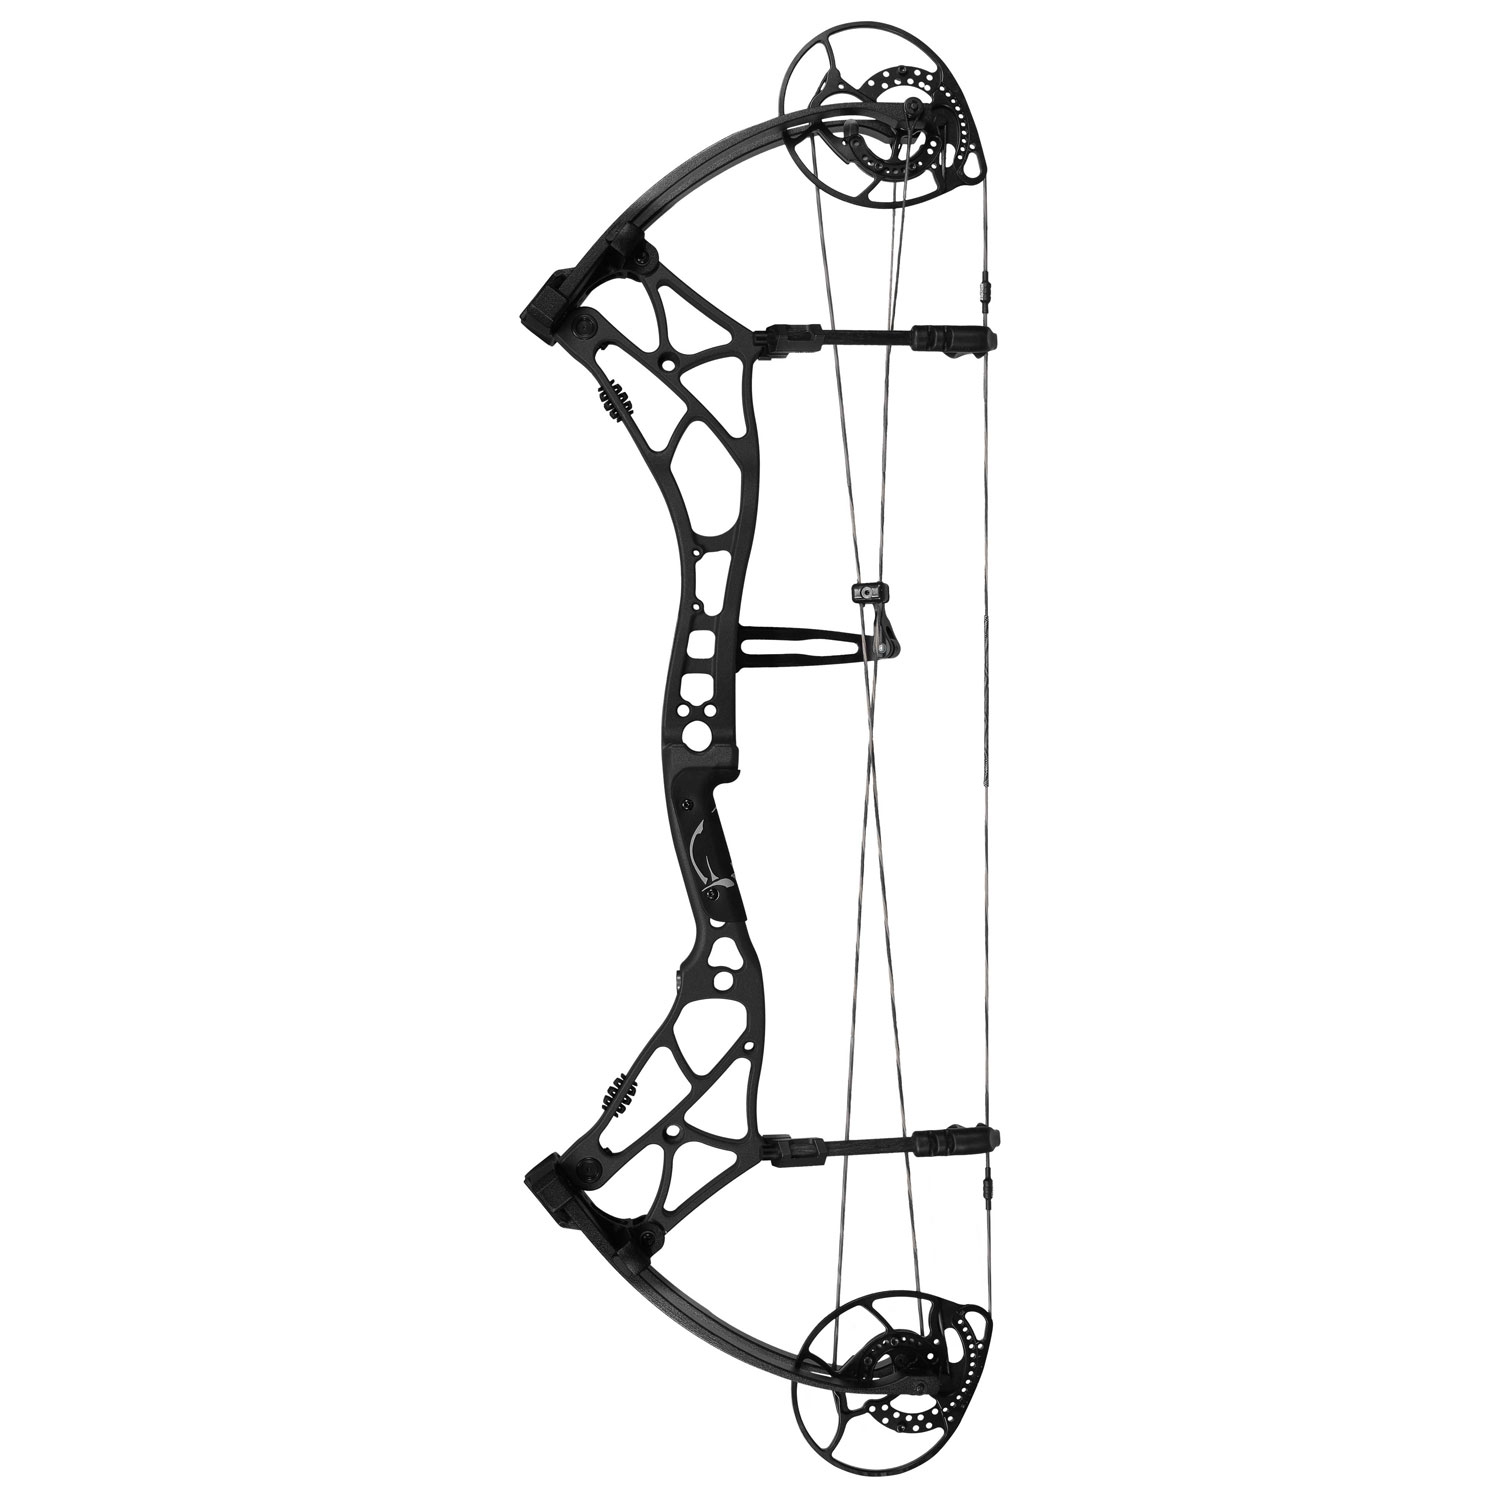 Compound bow clipart.